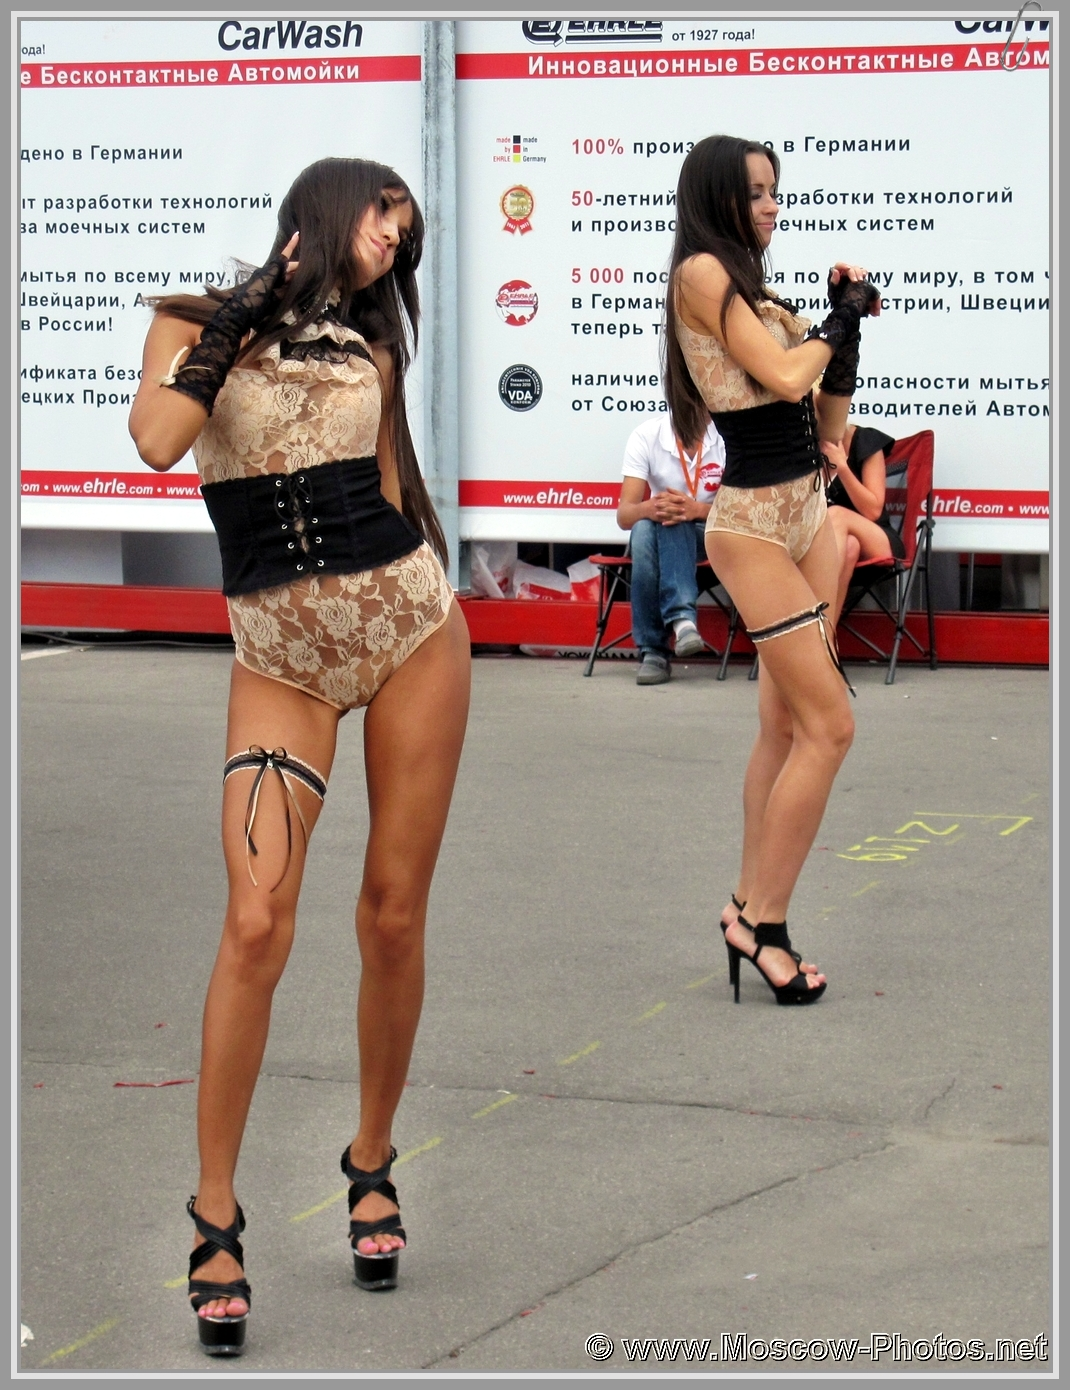 Dancing girls on the street of Moscow